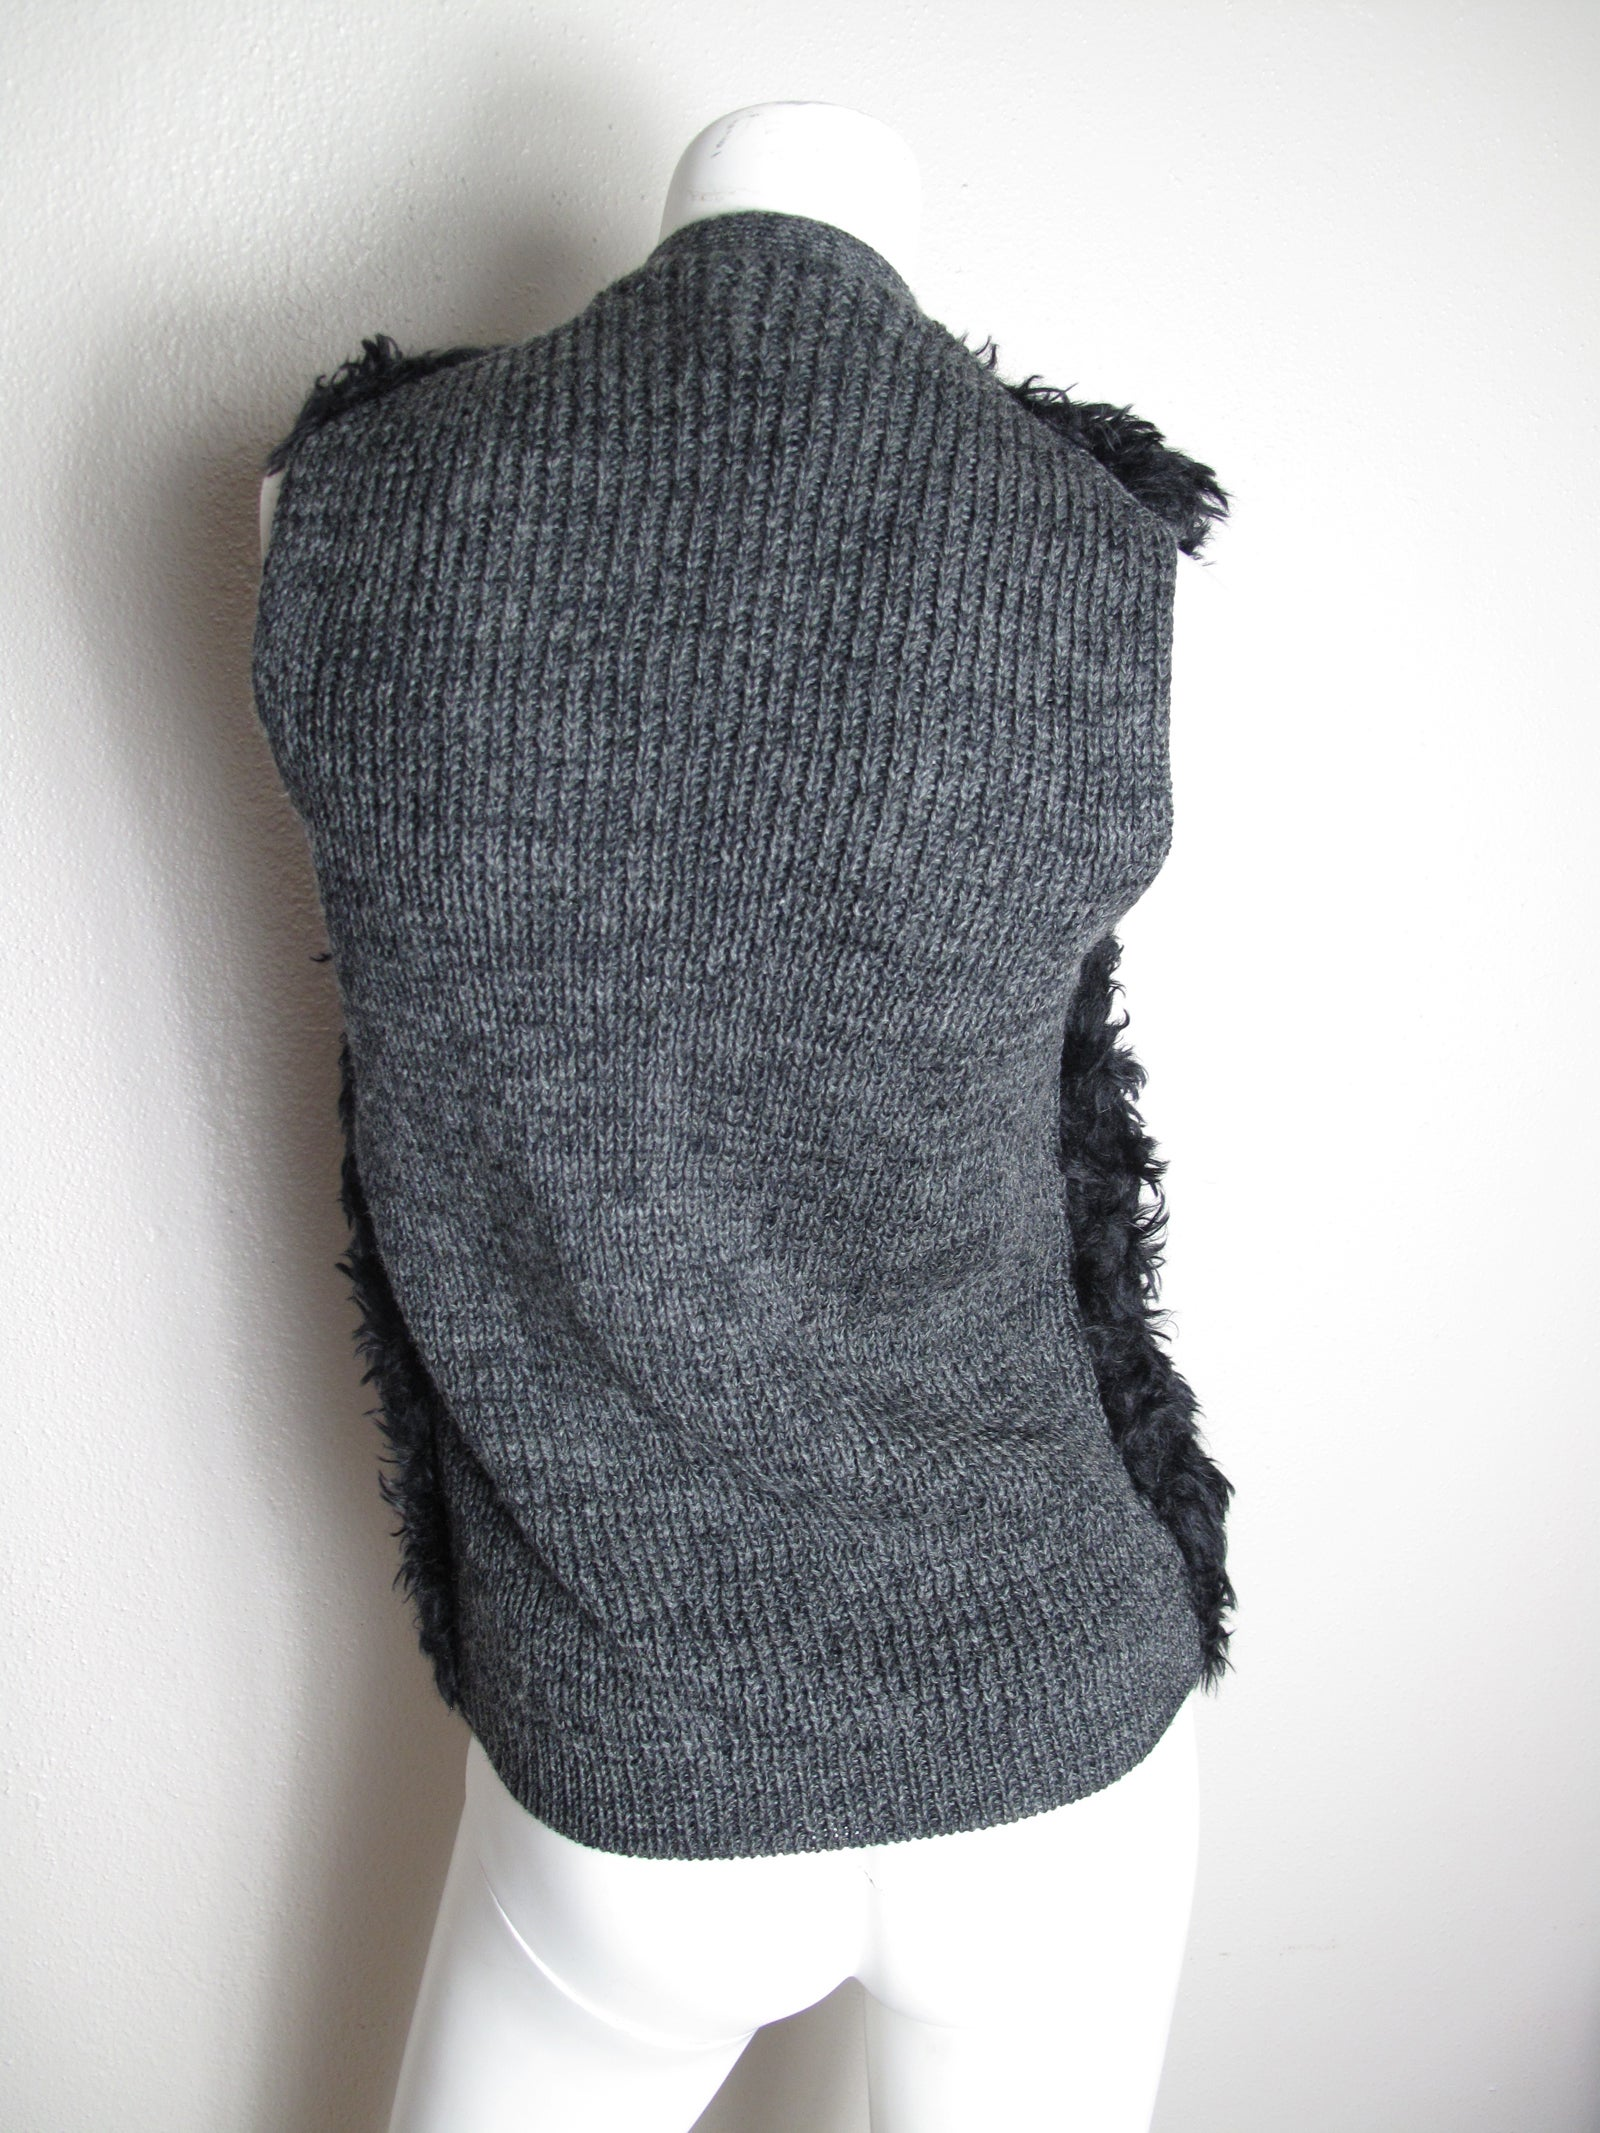 Prada Knit Sweater Vest For Sale At 1stdibs